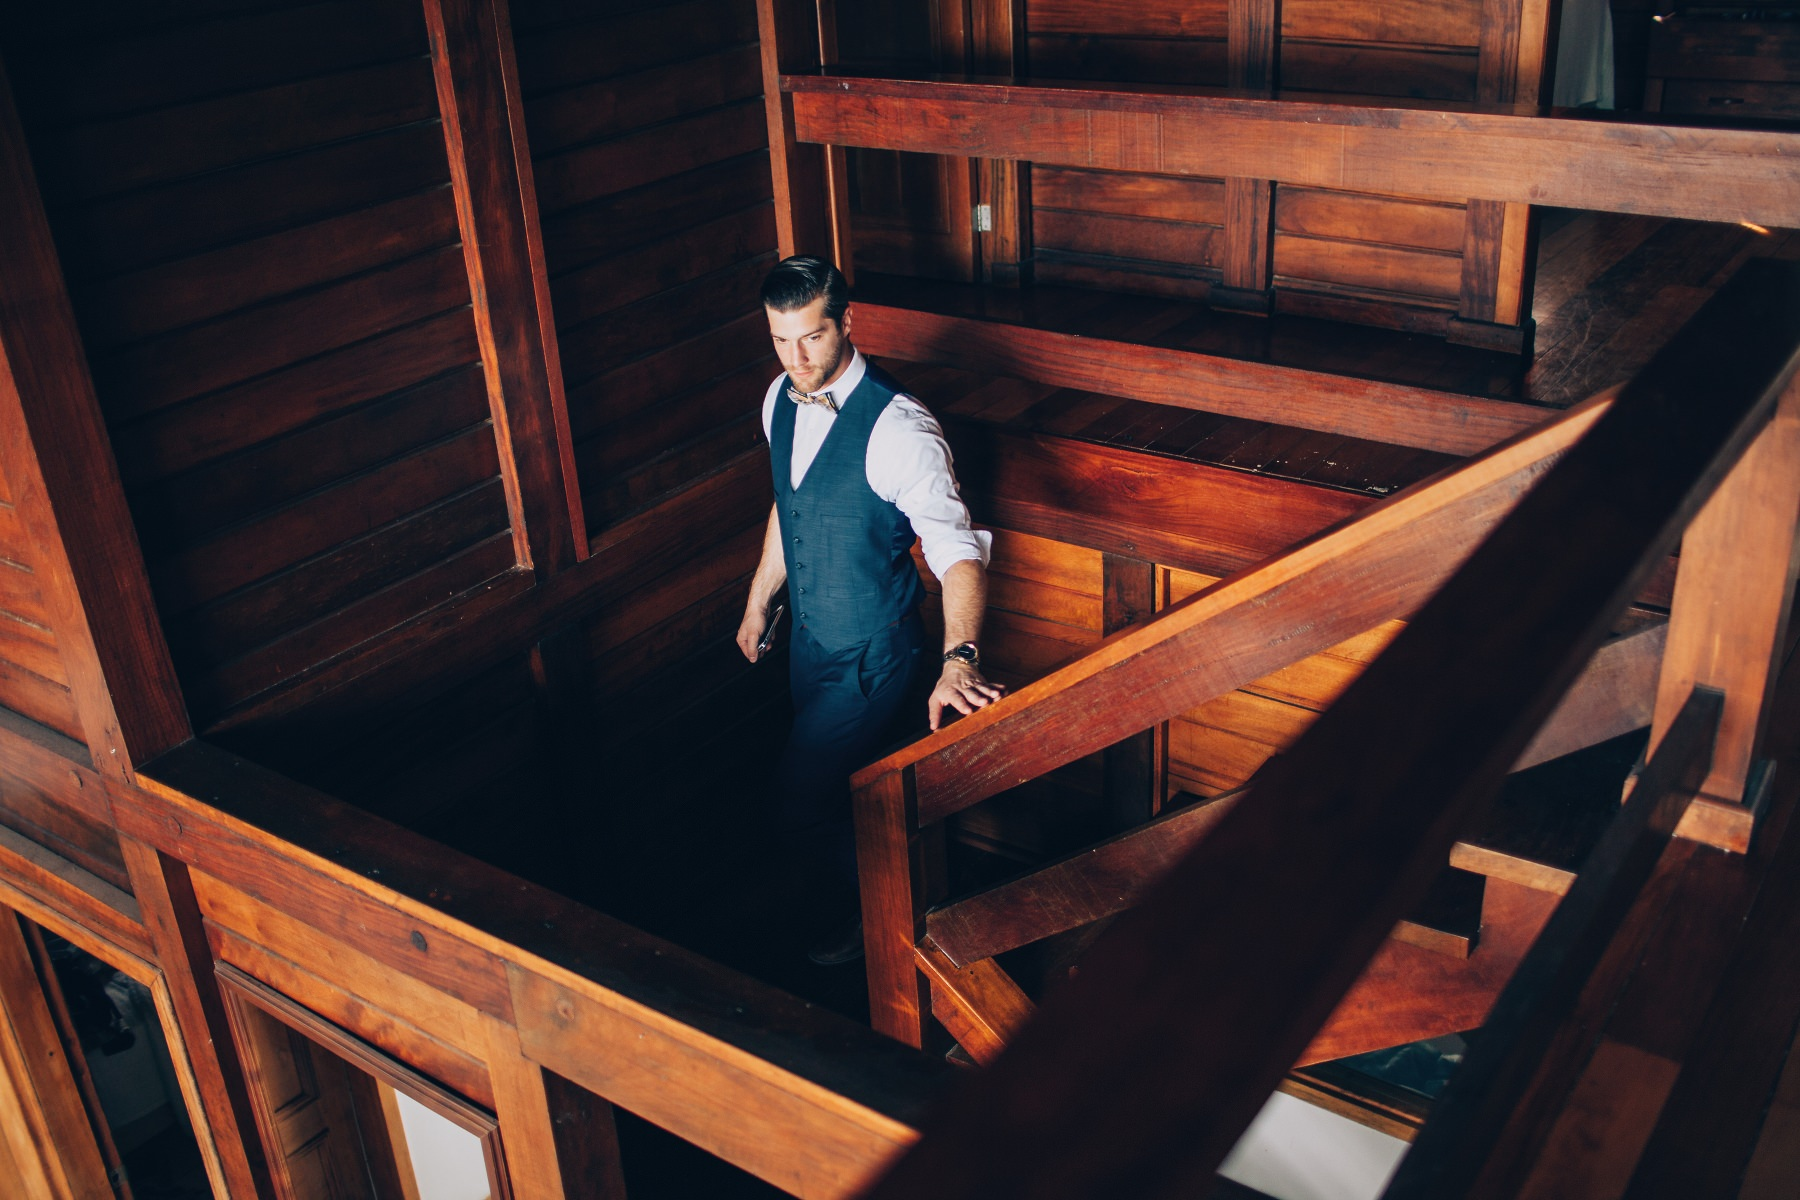 The groom walking down the stairs